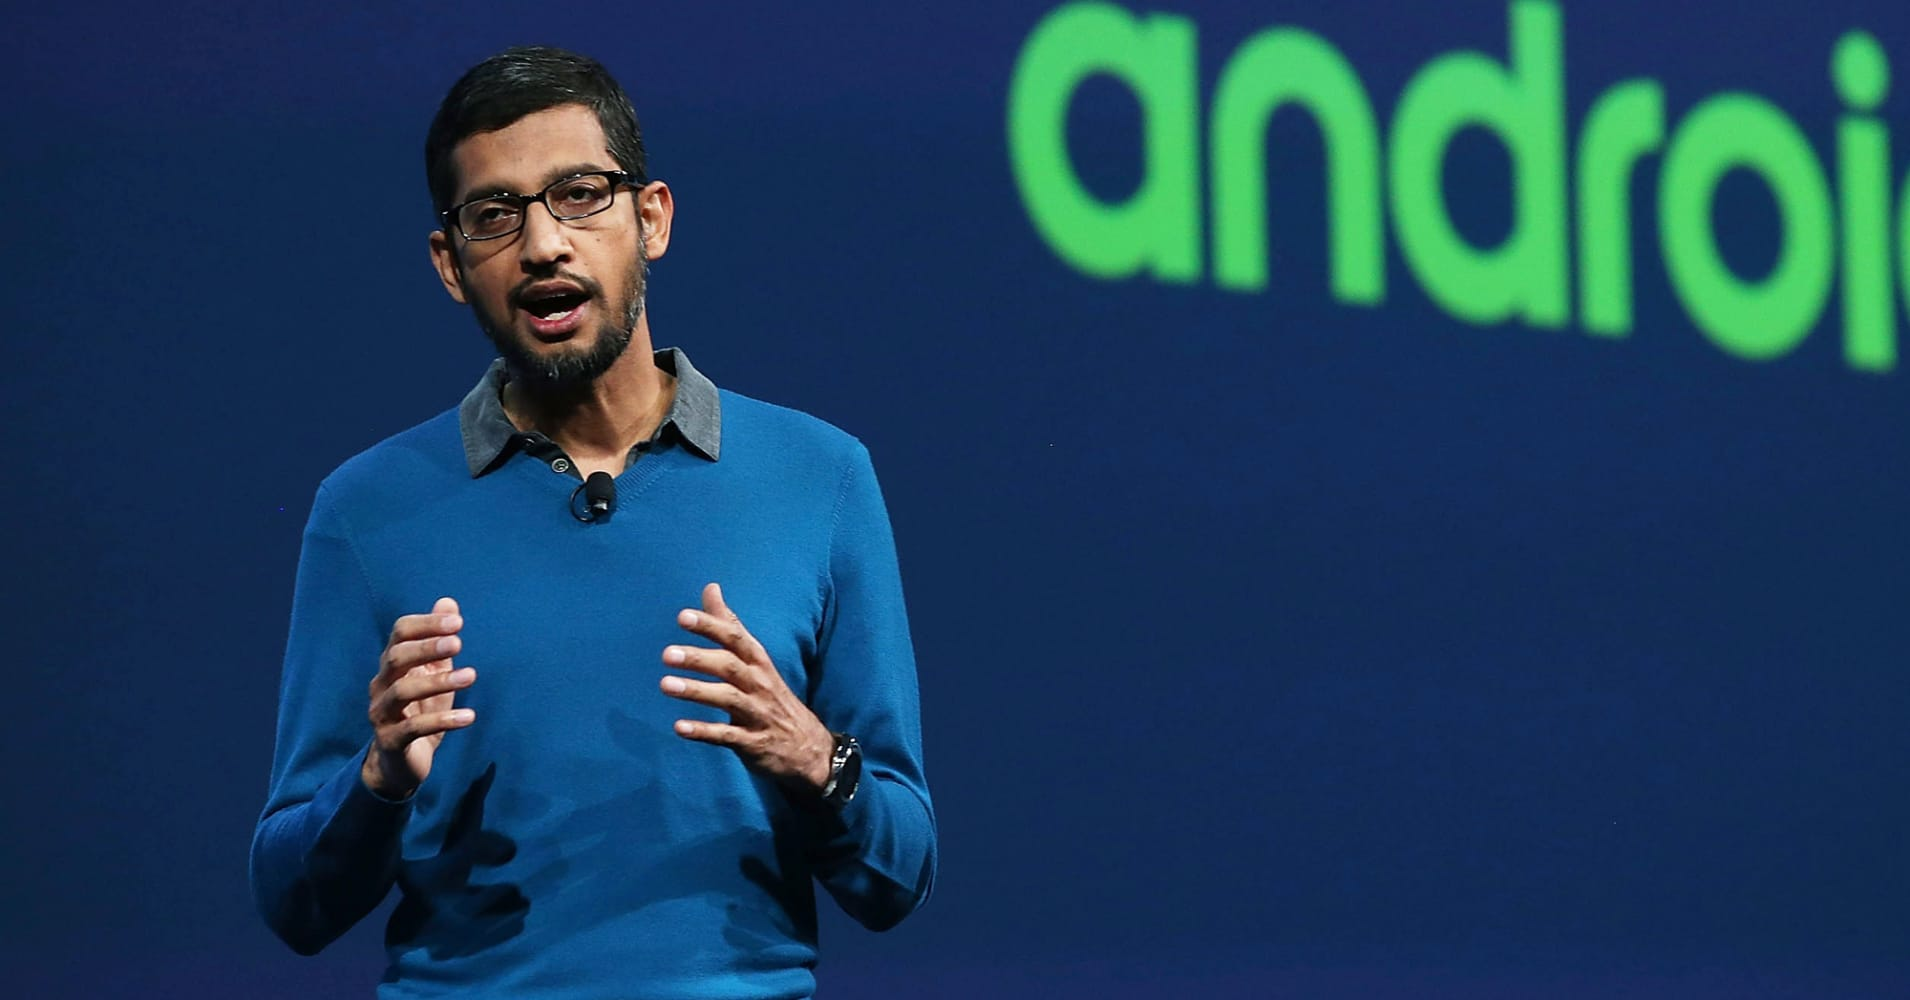 Google will introduce the next version of Android on Monday